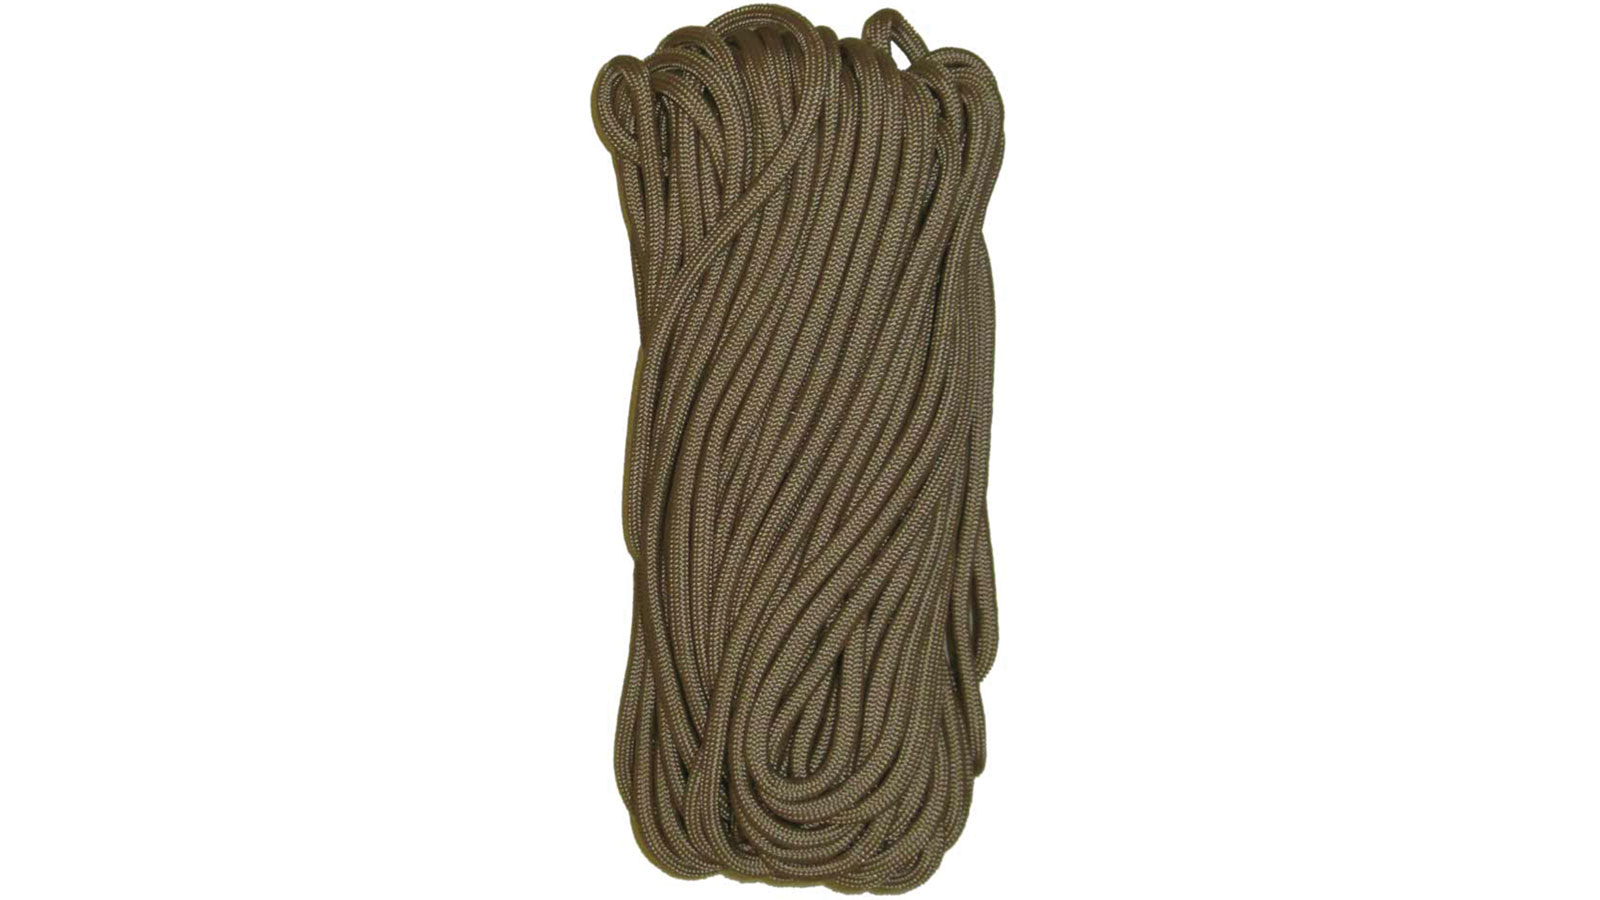 Tac Shield 550 CORD COYOTE 50FT 7 STRA